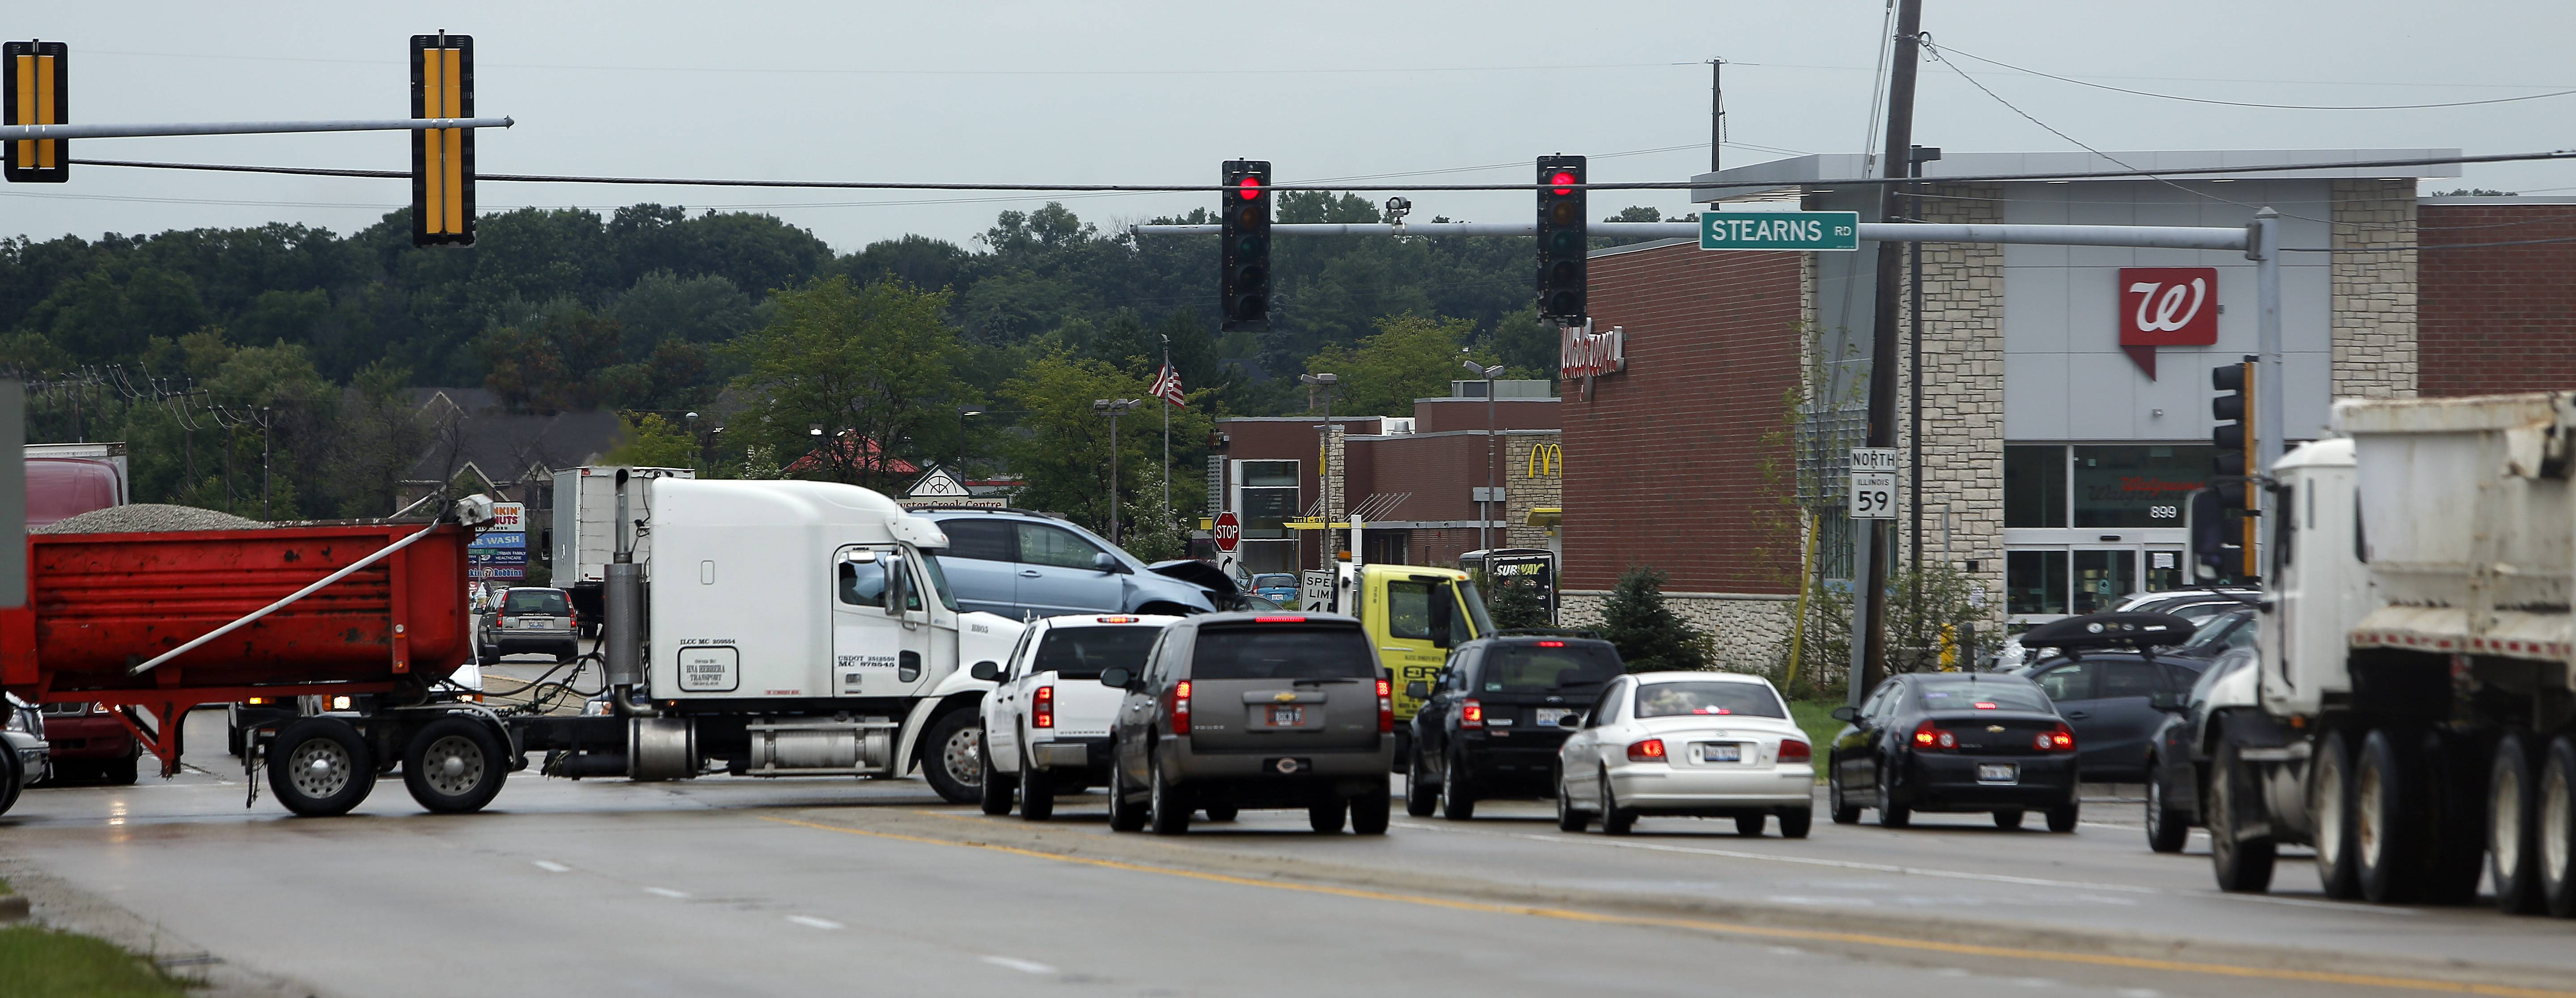 IDOT to widen Route 59 at Stearns Road in Bartlett